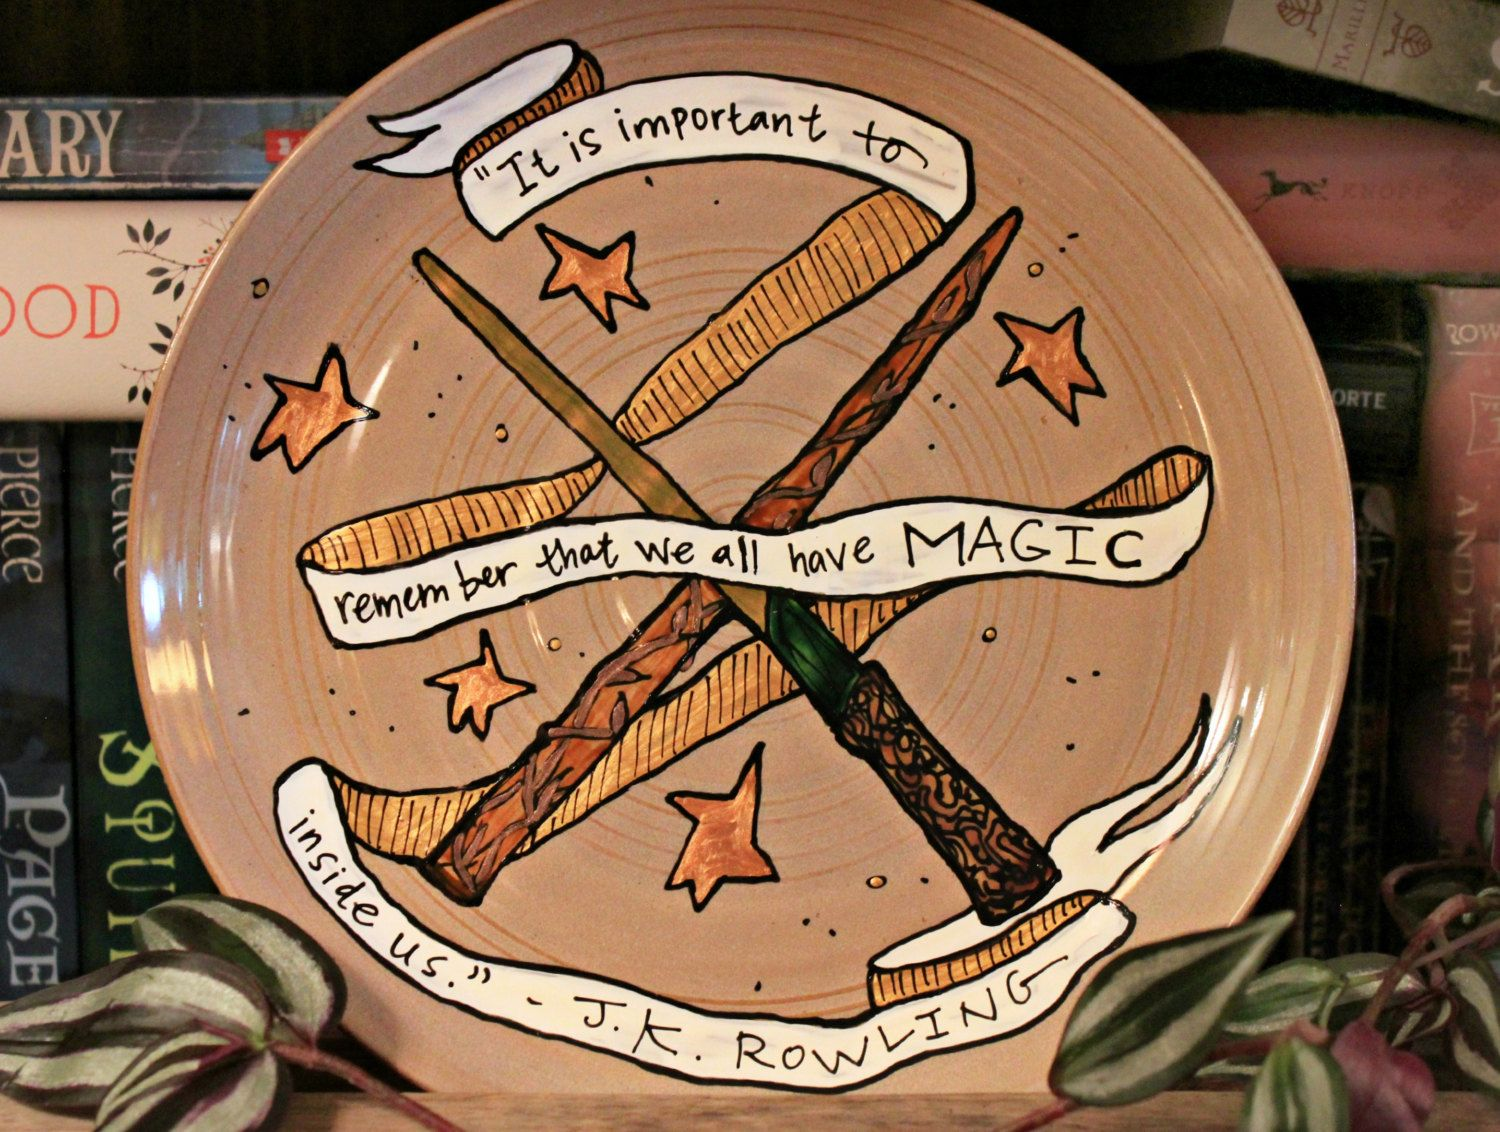 Small Decorative Plates Jk Rowling Decorative Plate We All Have Magic Inside Us Quote